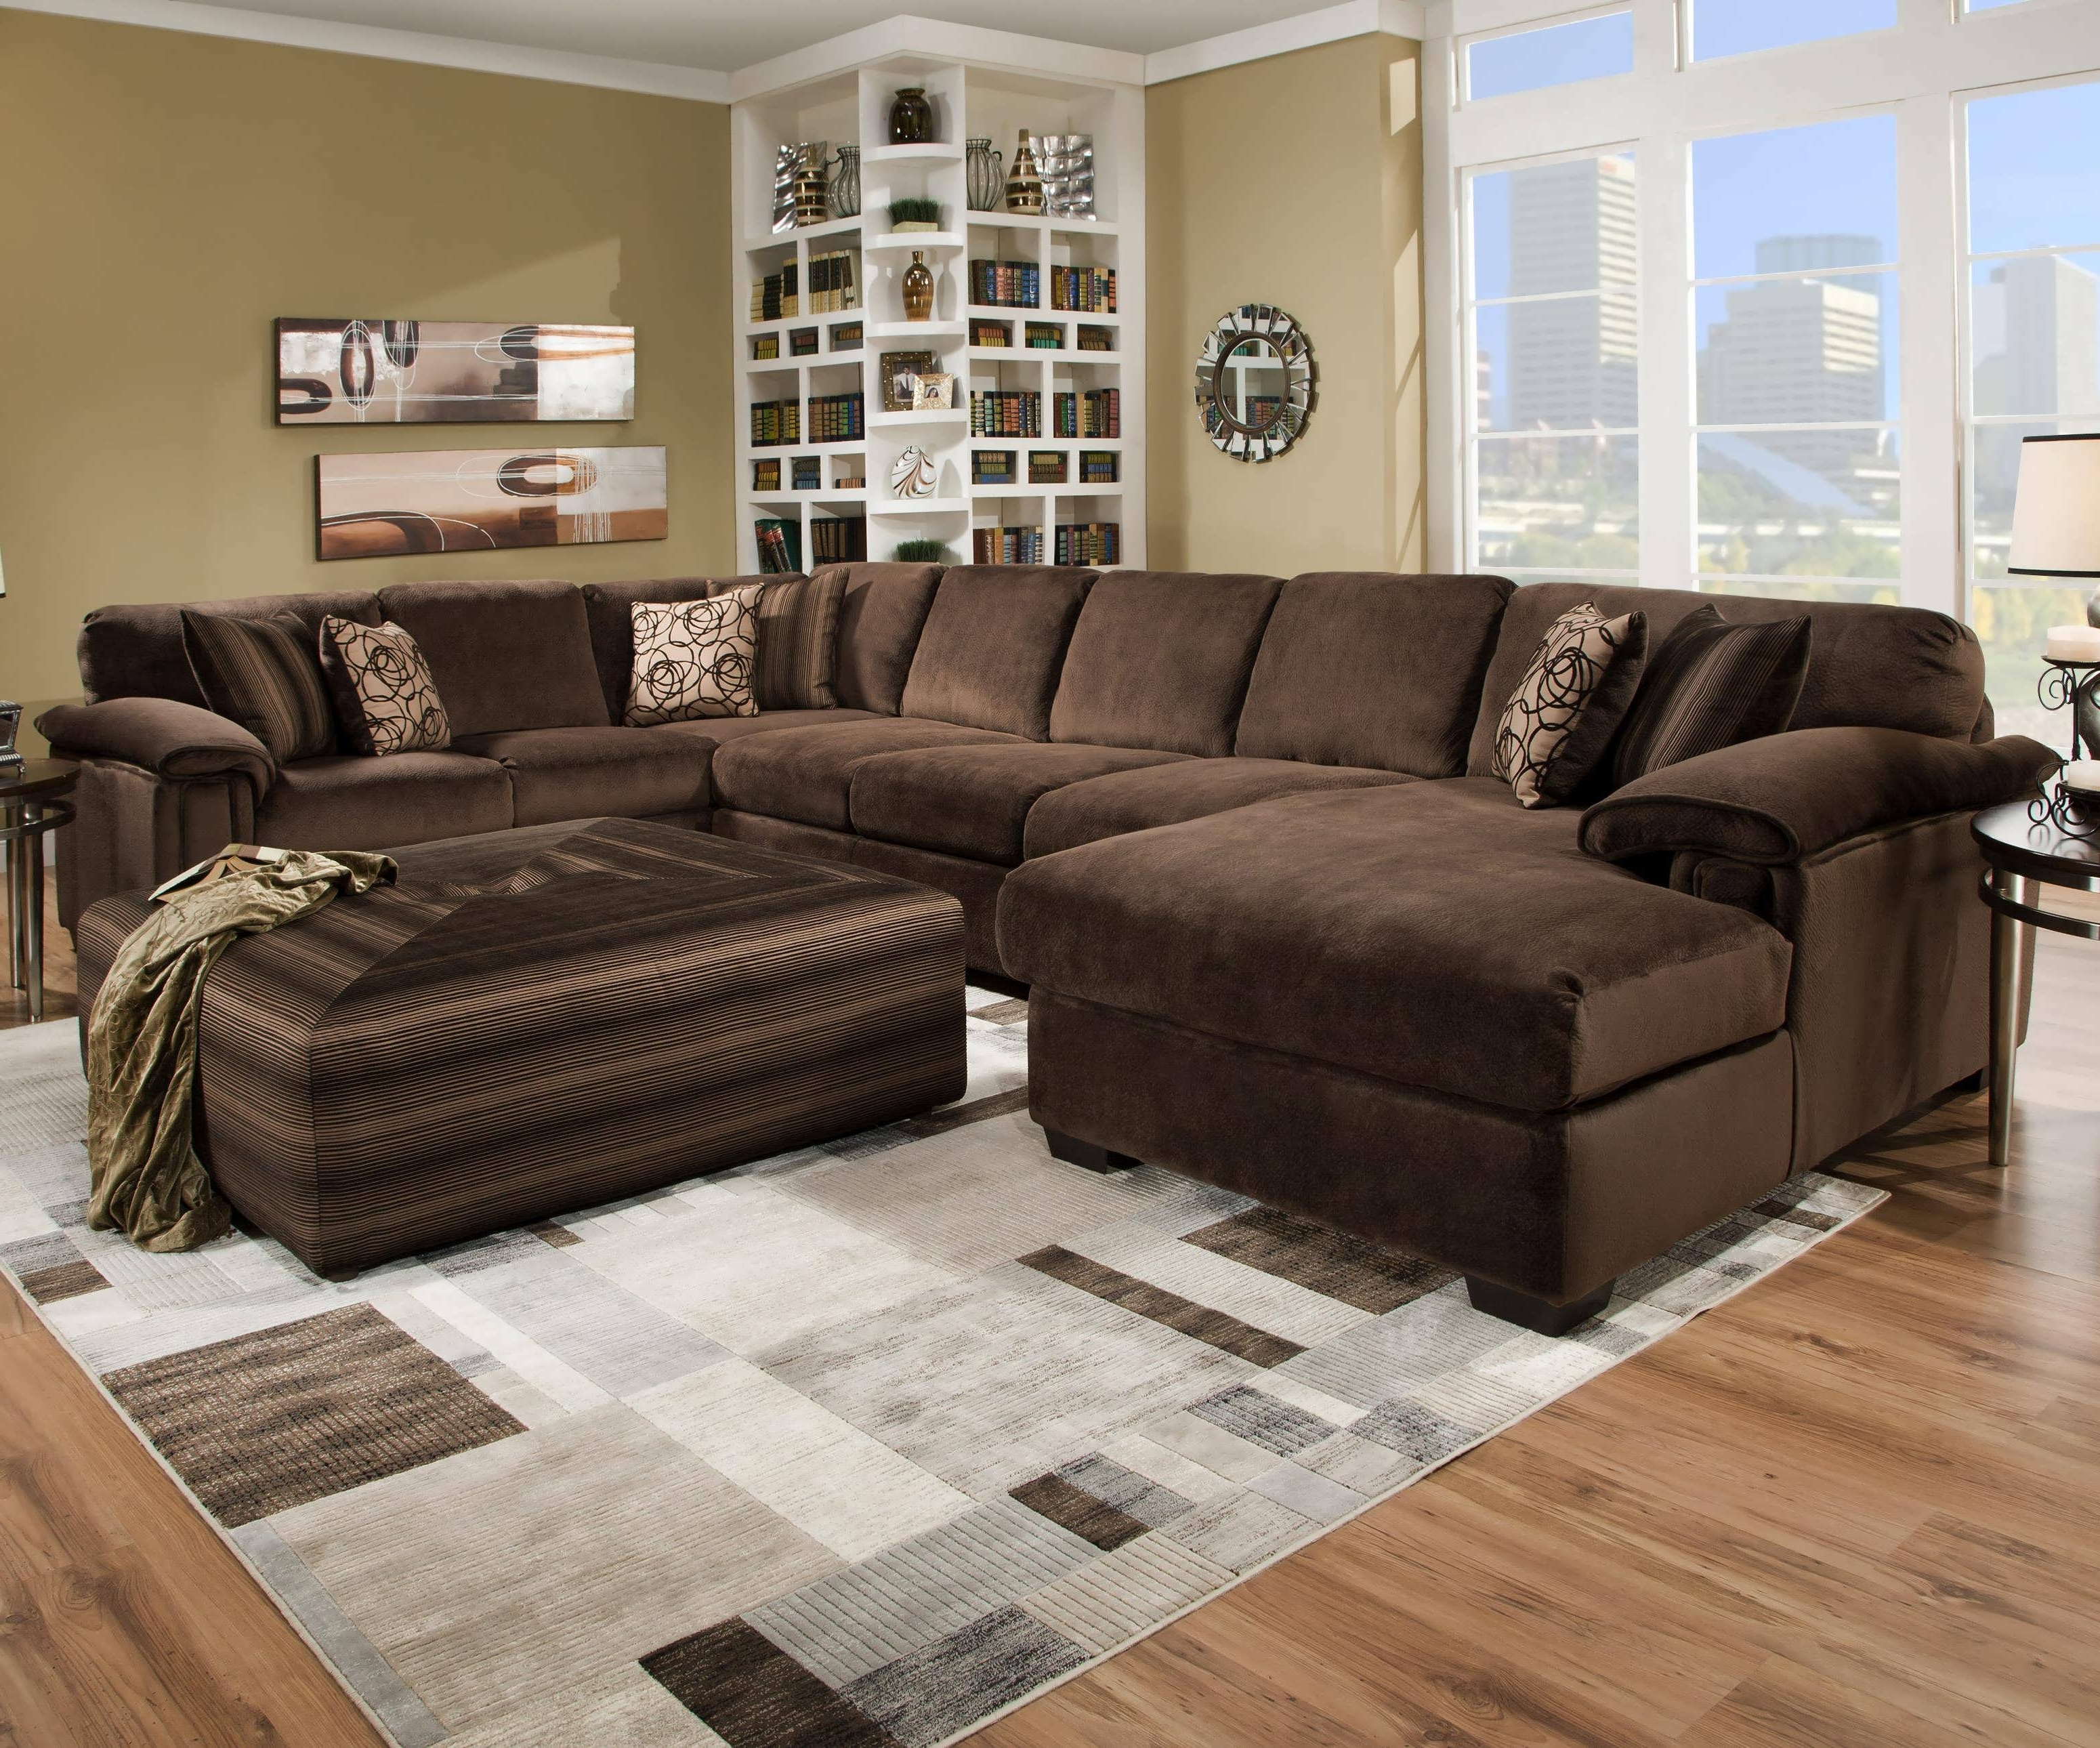 Chaise Lounge Sleeper Sofas Within Fashionable Sofa : Sectional Sofa For Small Spaces Couch With Chaise Deep (View 3 of 15)